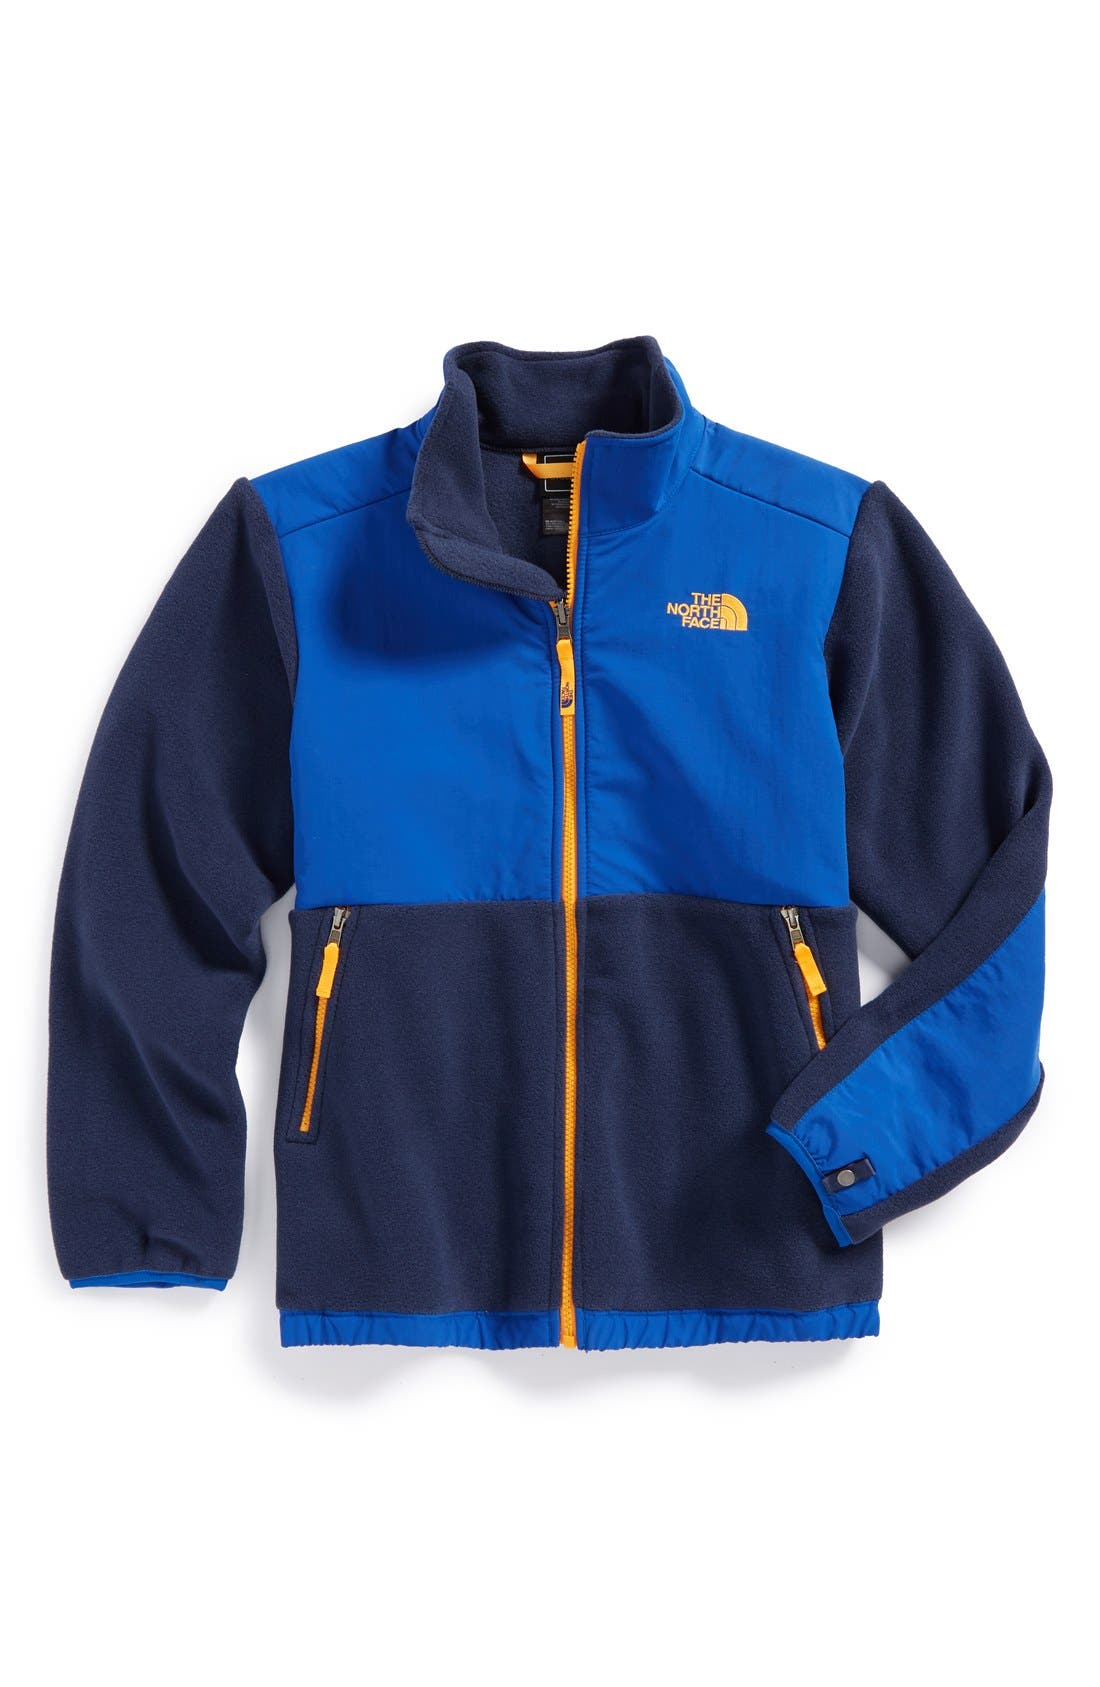 Main Image - The North Face 'Denali' Recycled Fleece Jacket (Big Boys)